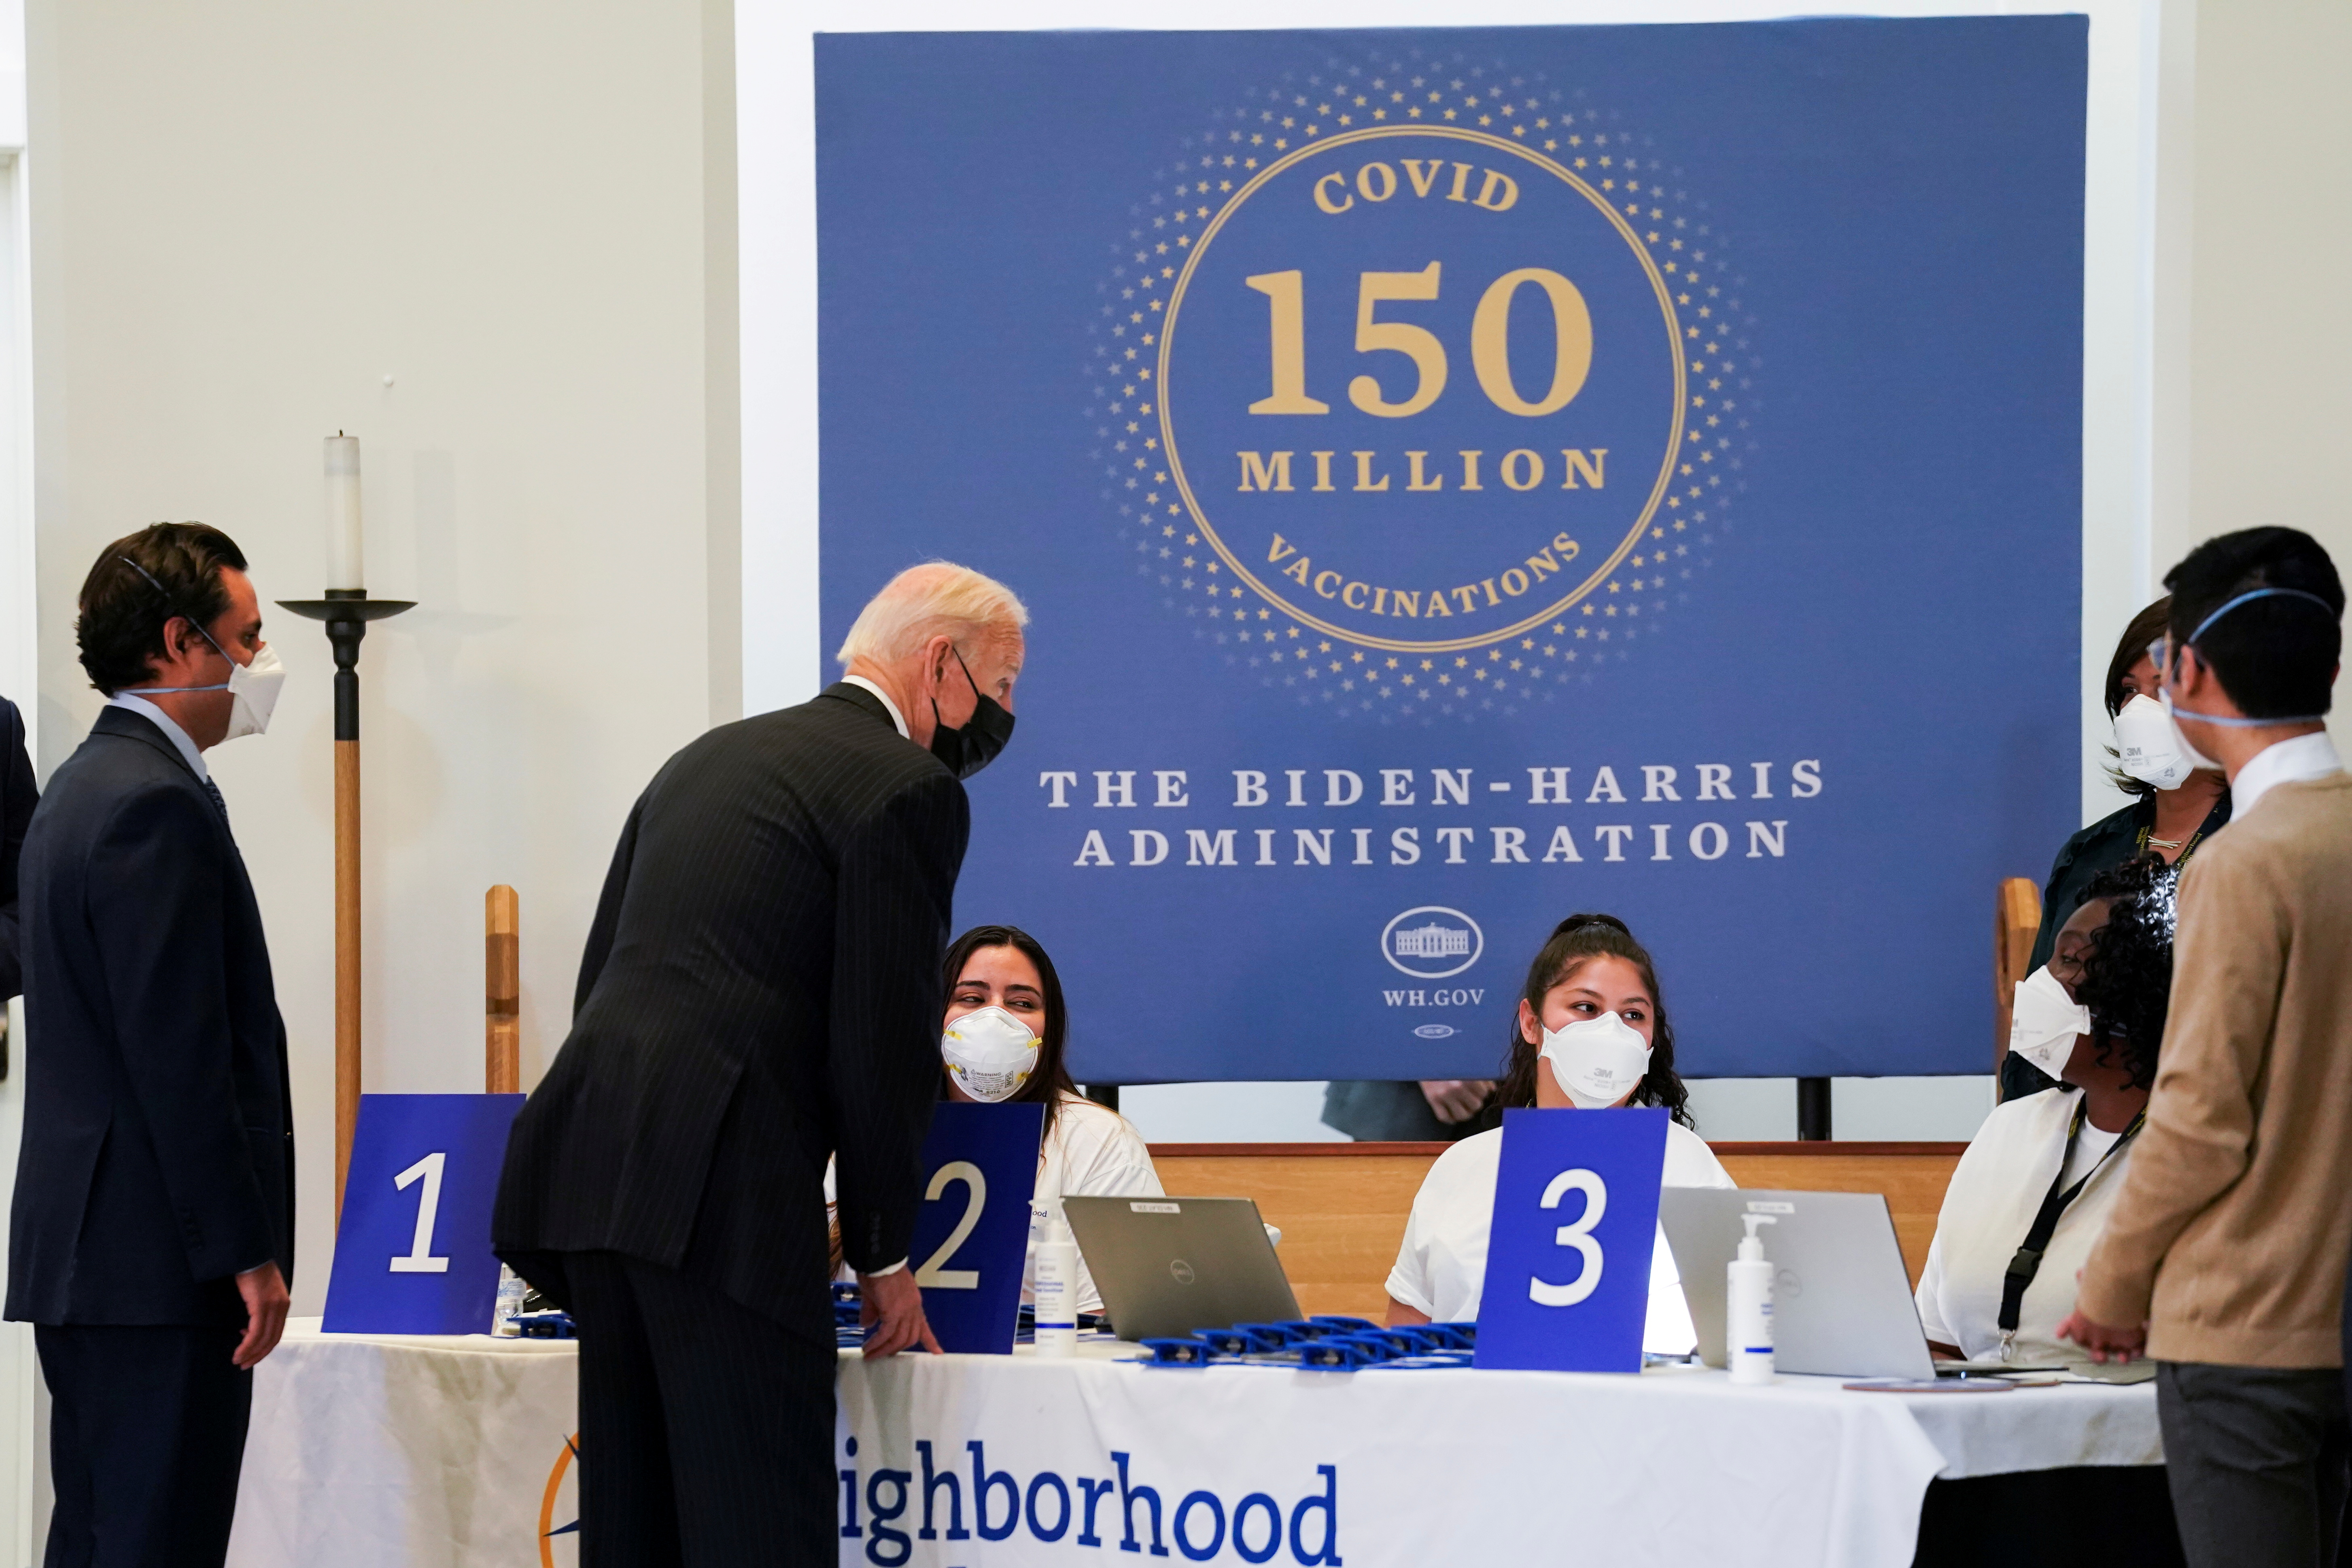 U.S. President Joe Biden speaks with medical workers during a visit to a coronavirus disease (COVID-19) vaccination site at Virginia Theological Seminary in Alexandria, Virginia, U.S., April 6, 2021. REUTERS/Kevin Lamarque/File Photo